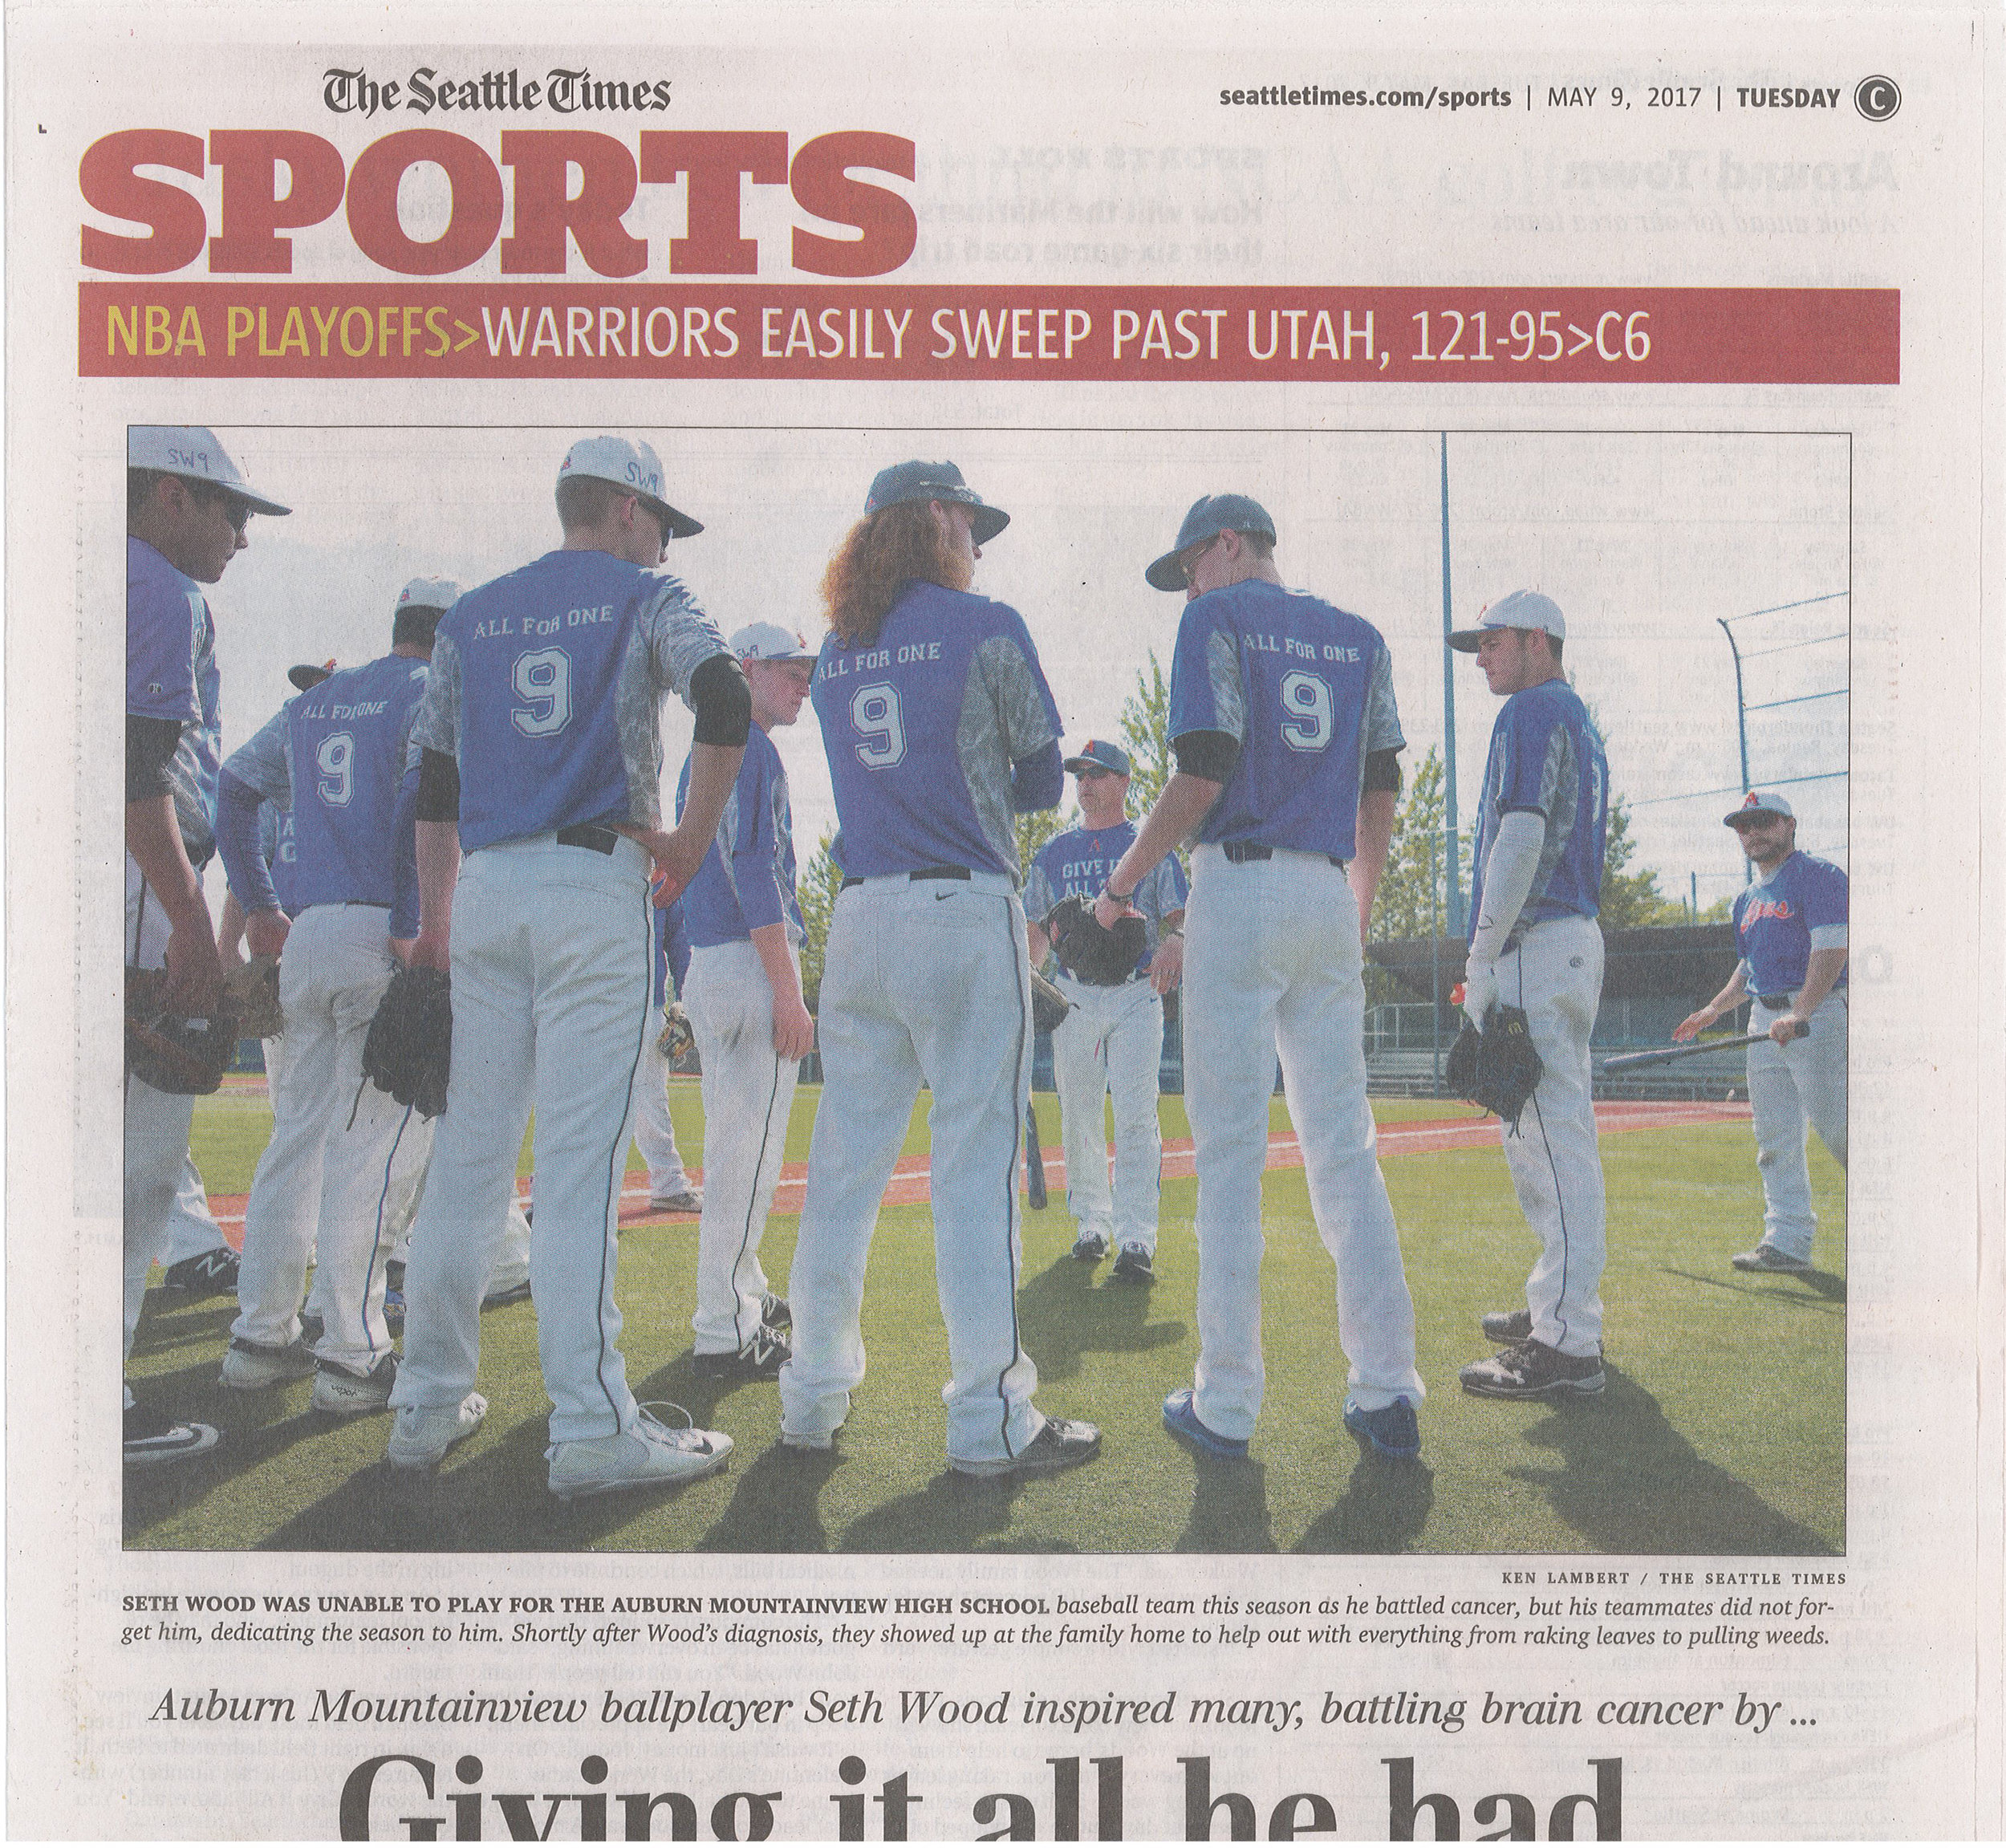 WLWLTDOO-2017-EPHEMERA-SEATTLE_TIMES-SPORTS-050917-FRONT.jpg